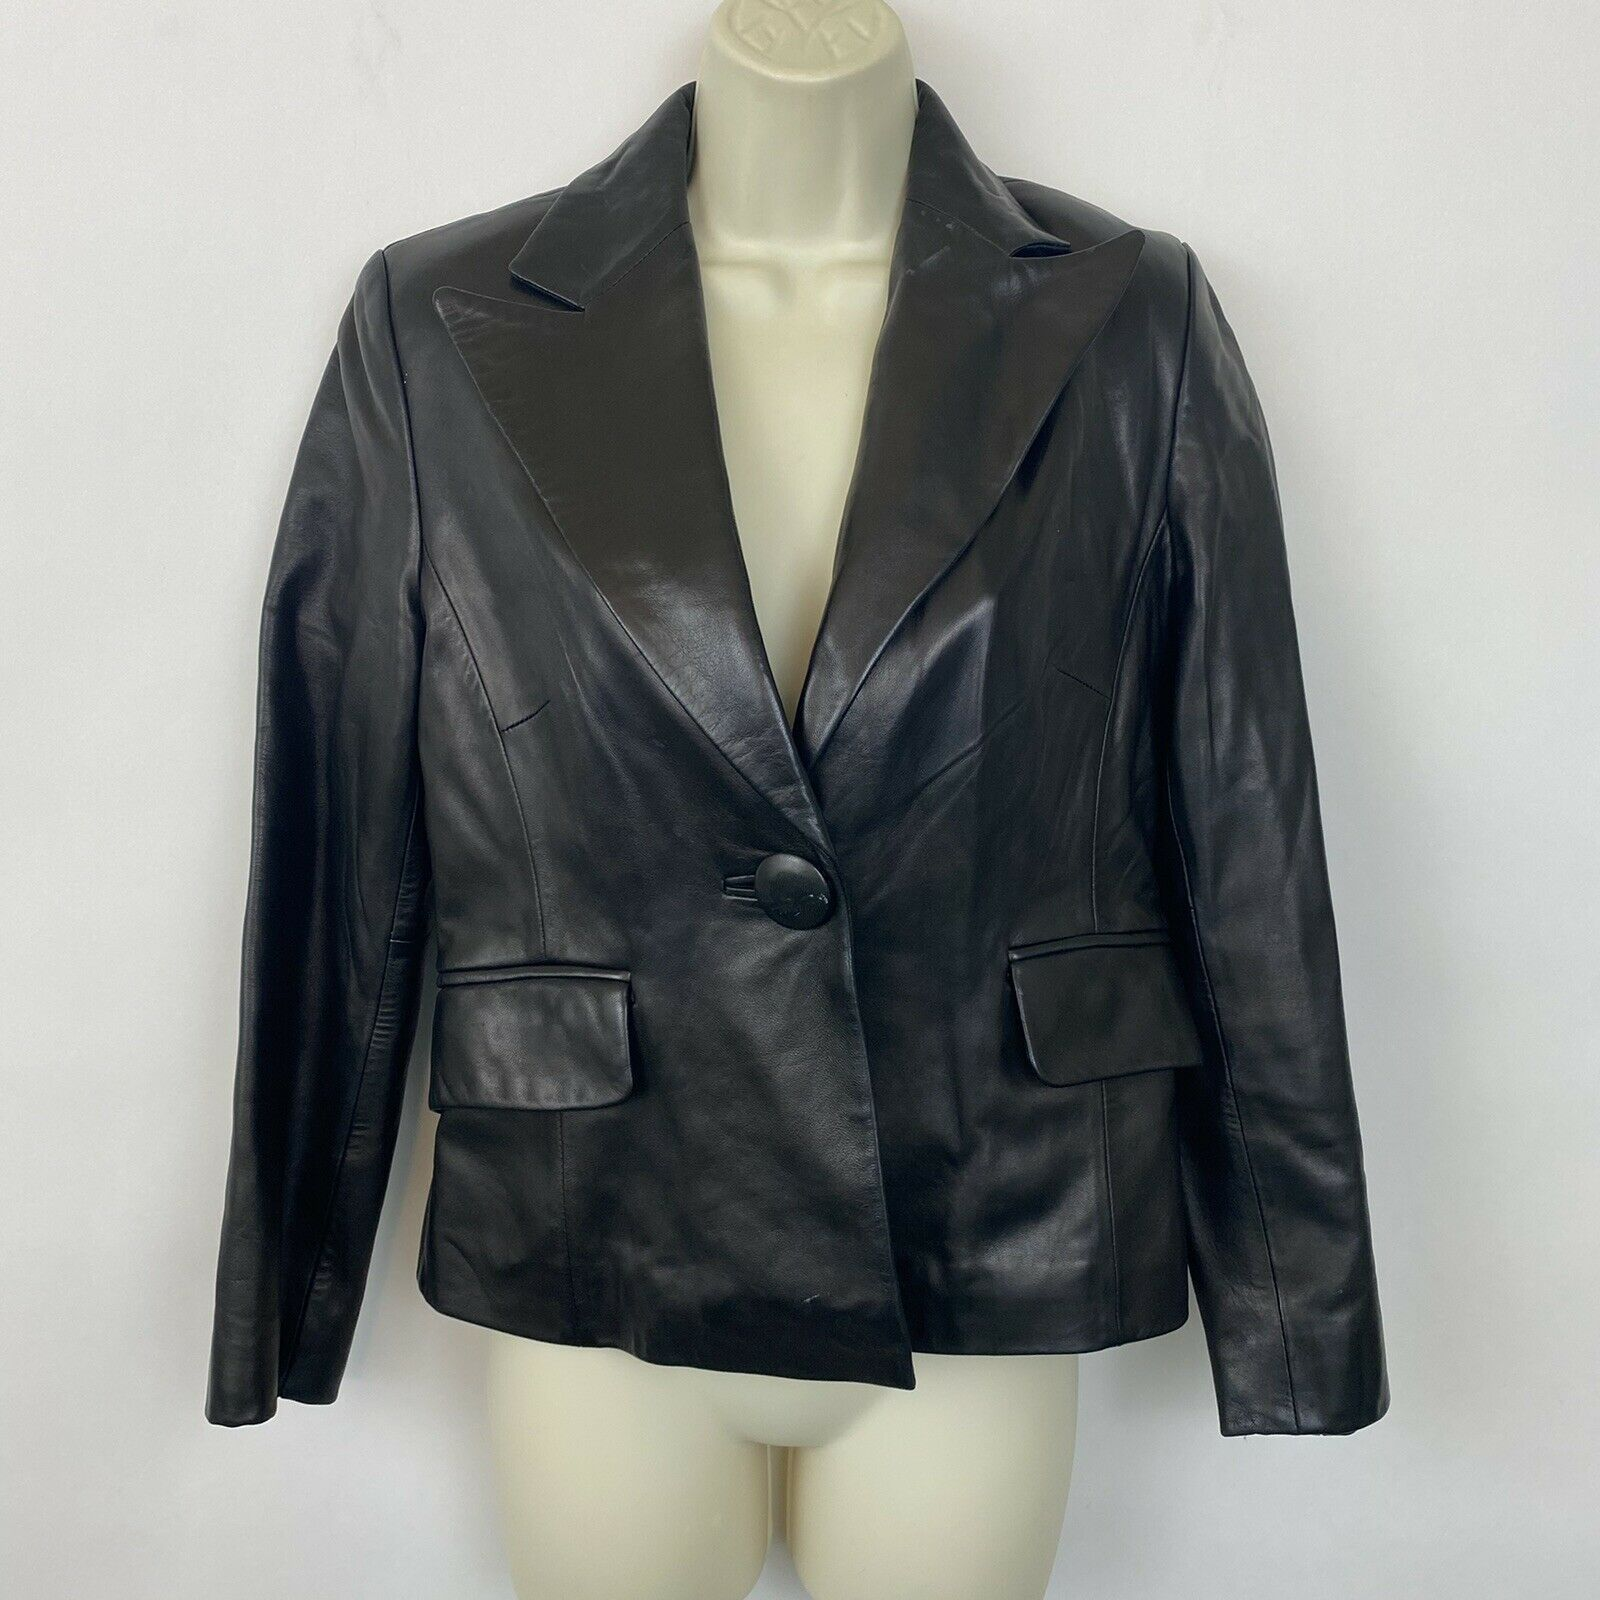 Banana Republic Womens 6 Petite black leather jacket butter soft one button